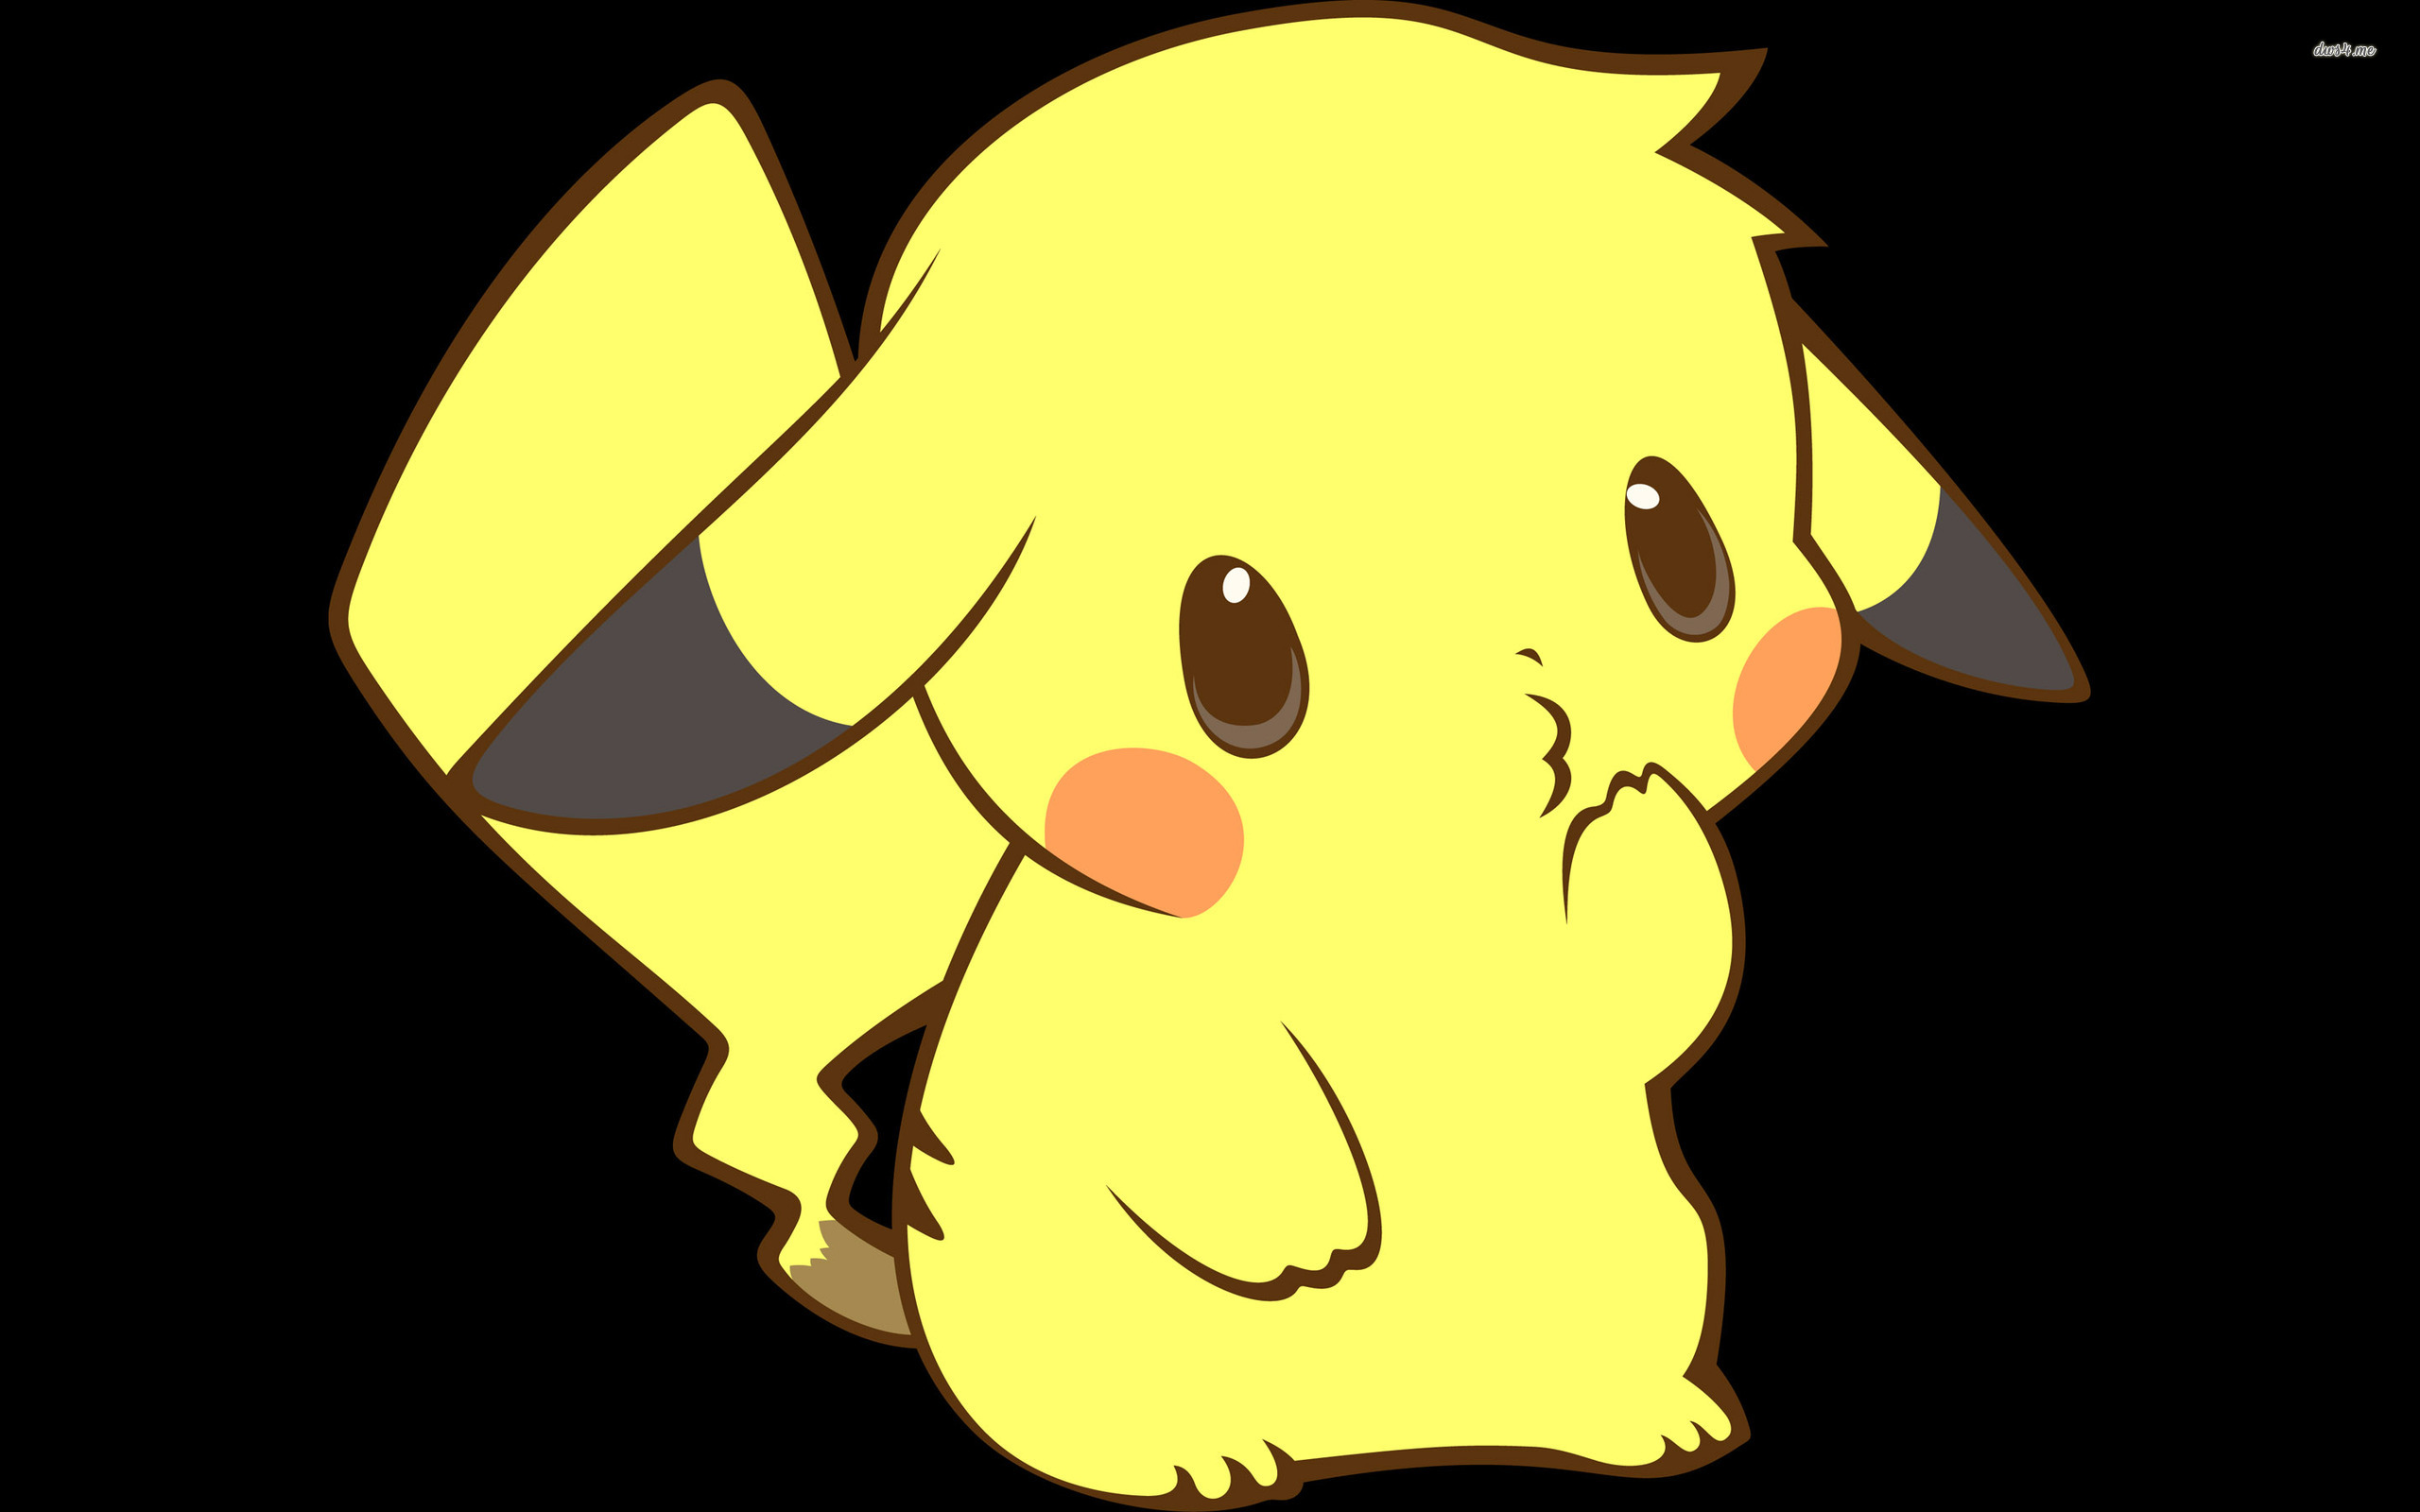 Cute Wallpaper Galaxy Note Pokemon New Hd Wallpapers High Definition All Hd Wallpapers